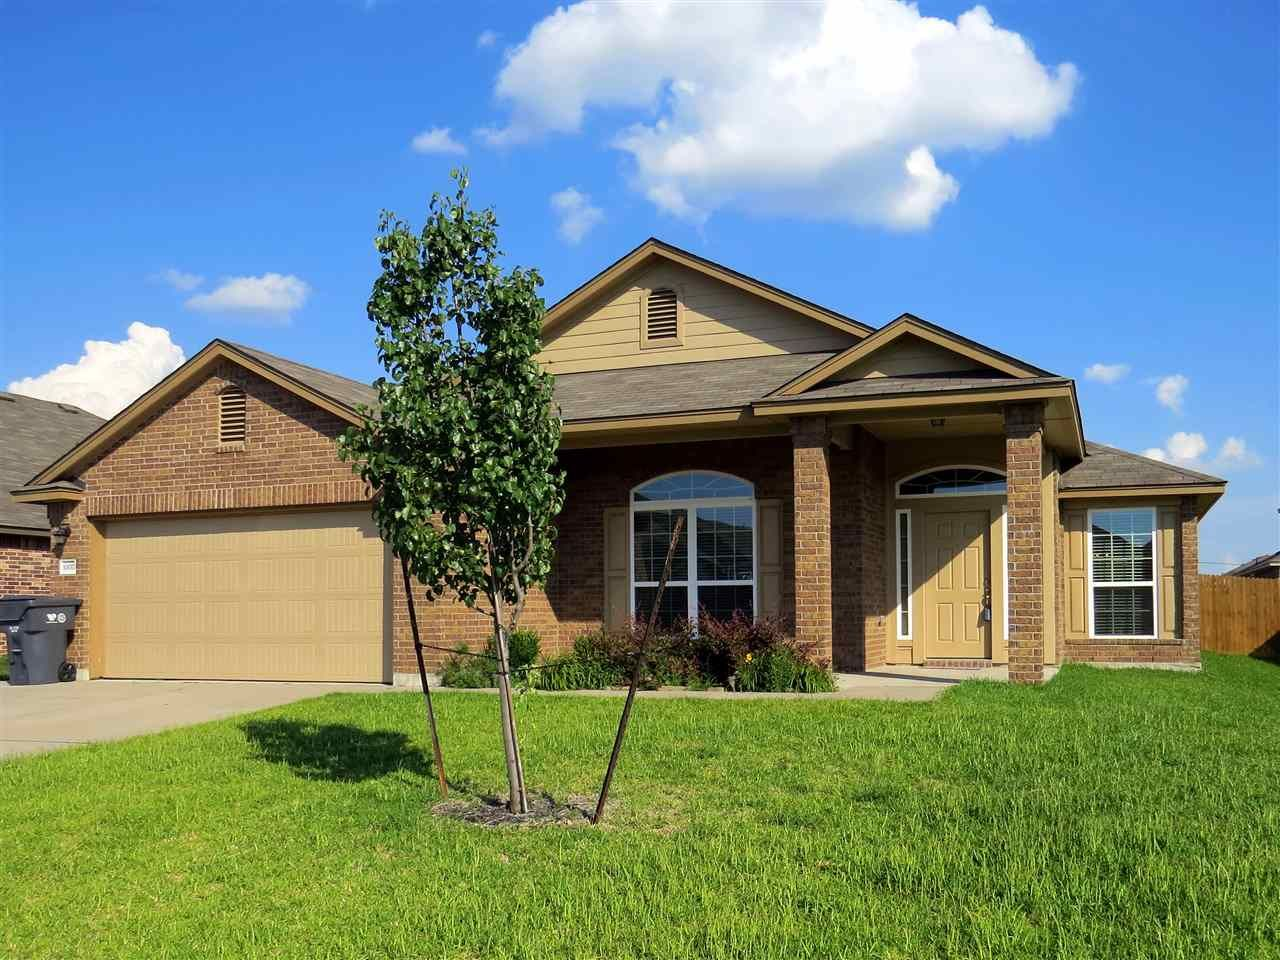 how to buy a house in texas without a realtor